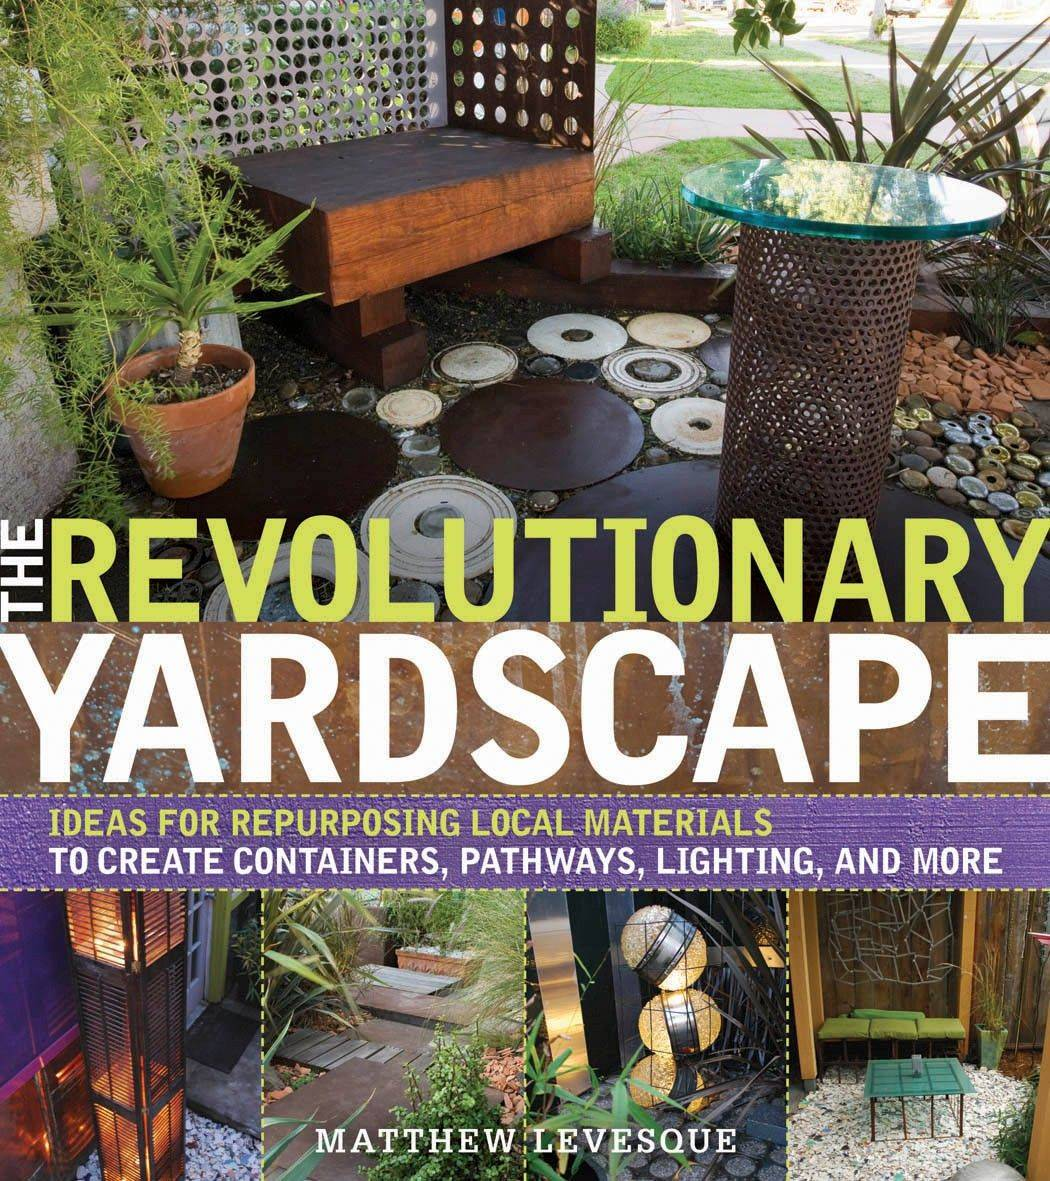 This book cover image courtesy of Timber Press shows the cover of �The Revolutionary Yardscape,� by Matthew Levesque. Trash talk has helped Levesque fashion an inventive career in garden design. (AP Photo/Timber Press)